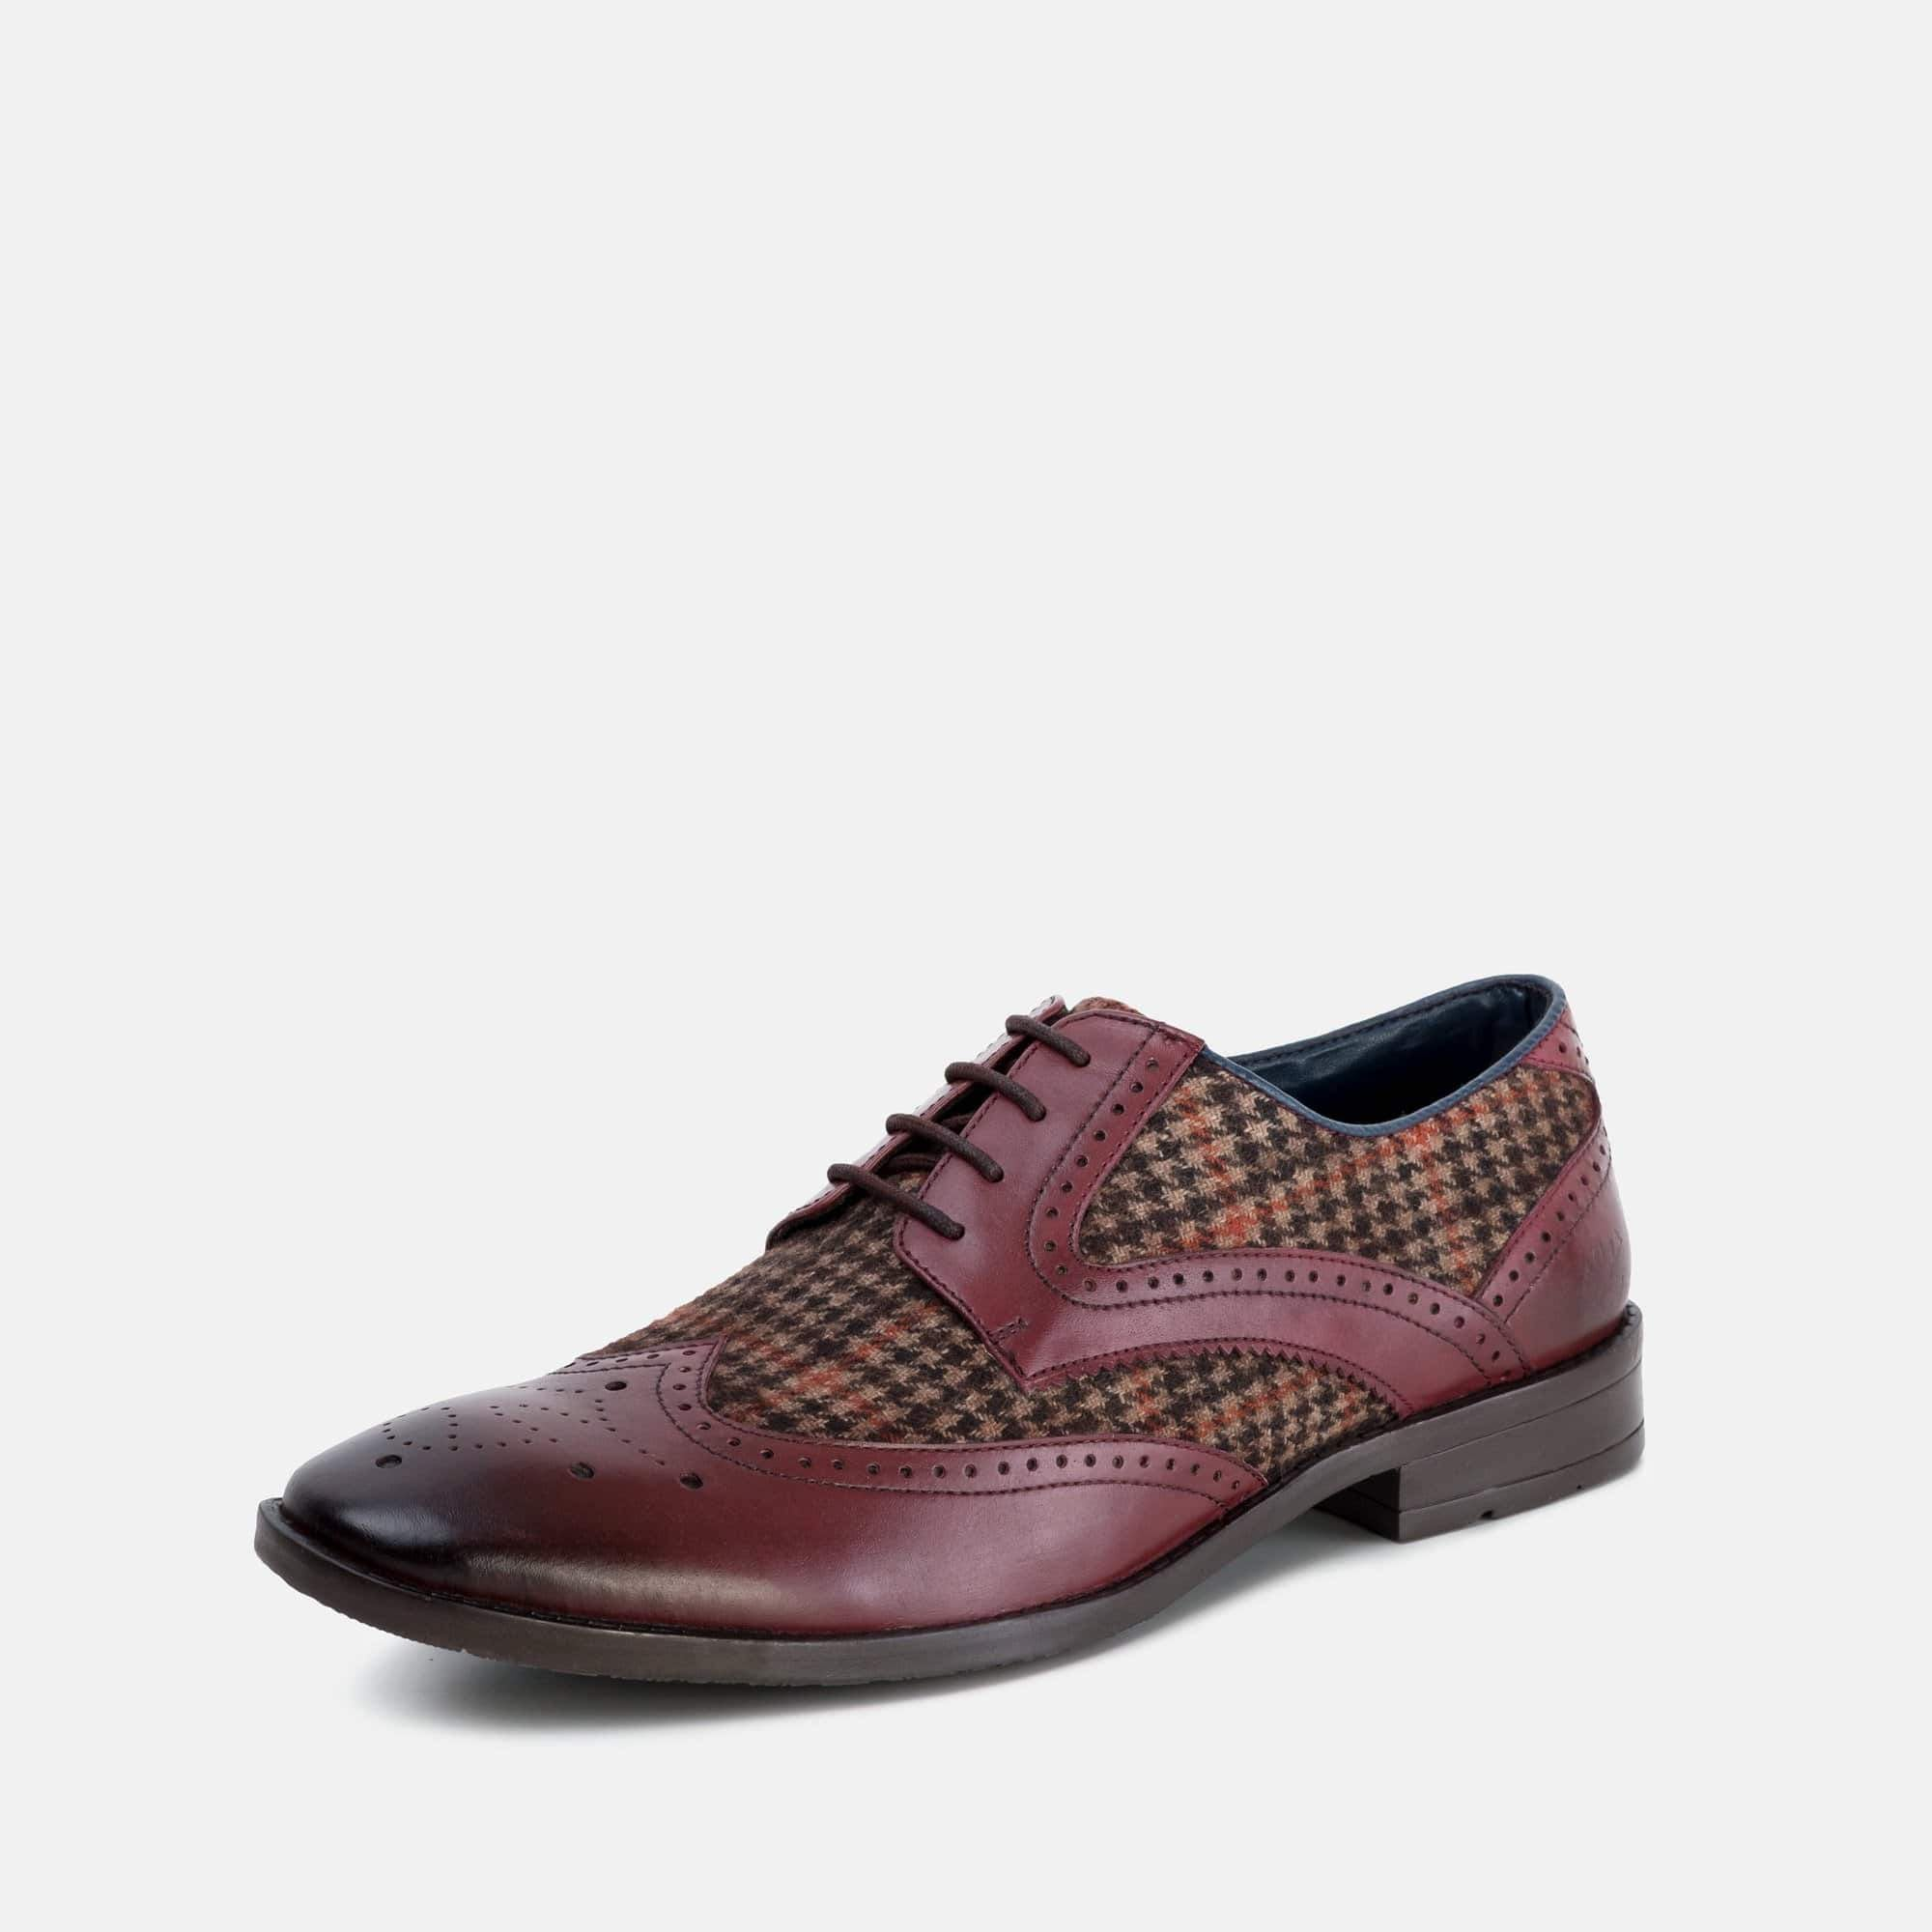 Goodwin Smith Footwear AW19 MENS GOODWIN SMITH NEWCHURCH BORDO HOUNDTOOTH DERBY